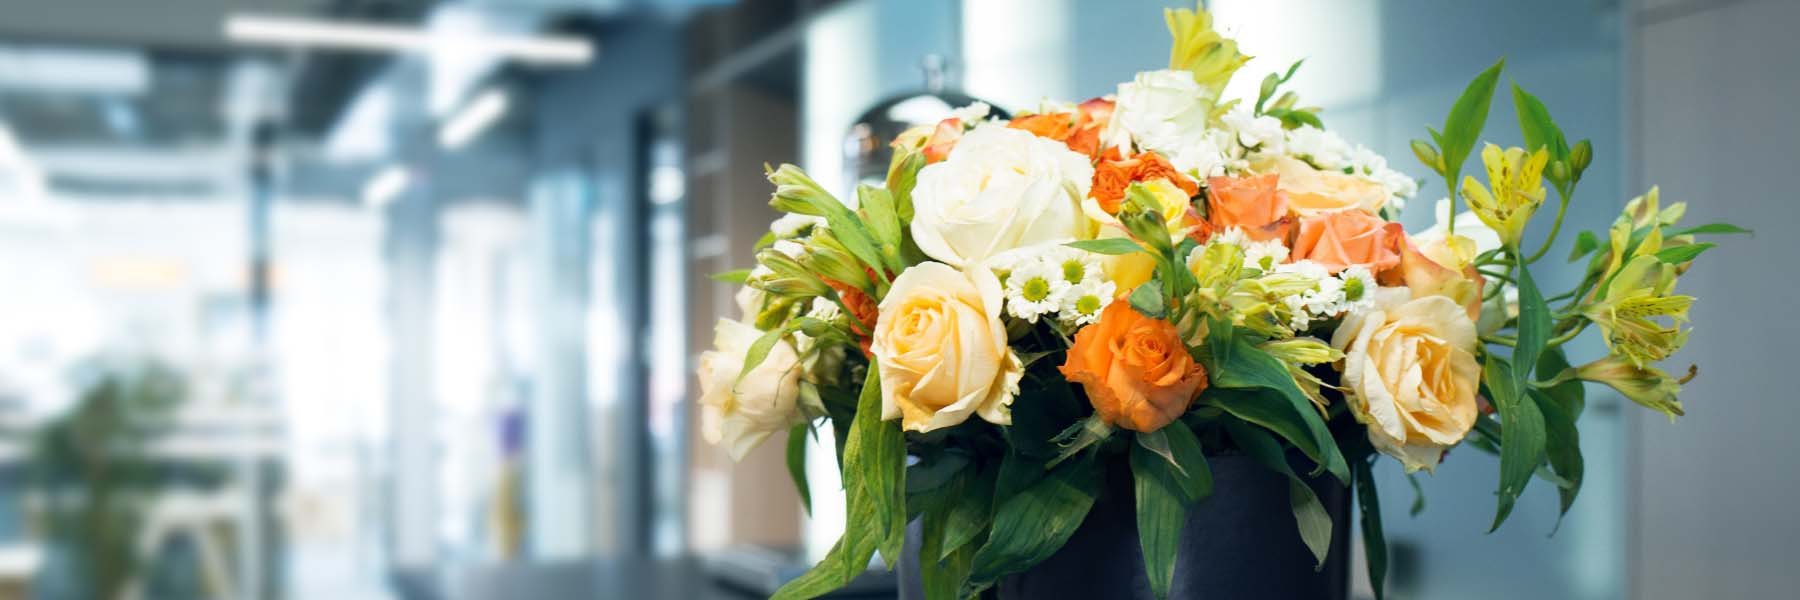 Bright bouquet of freshly cut flowers including orange roses and mixed foliage in an office environment